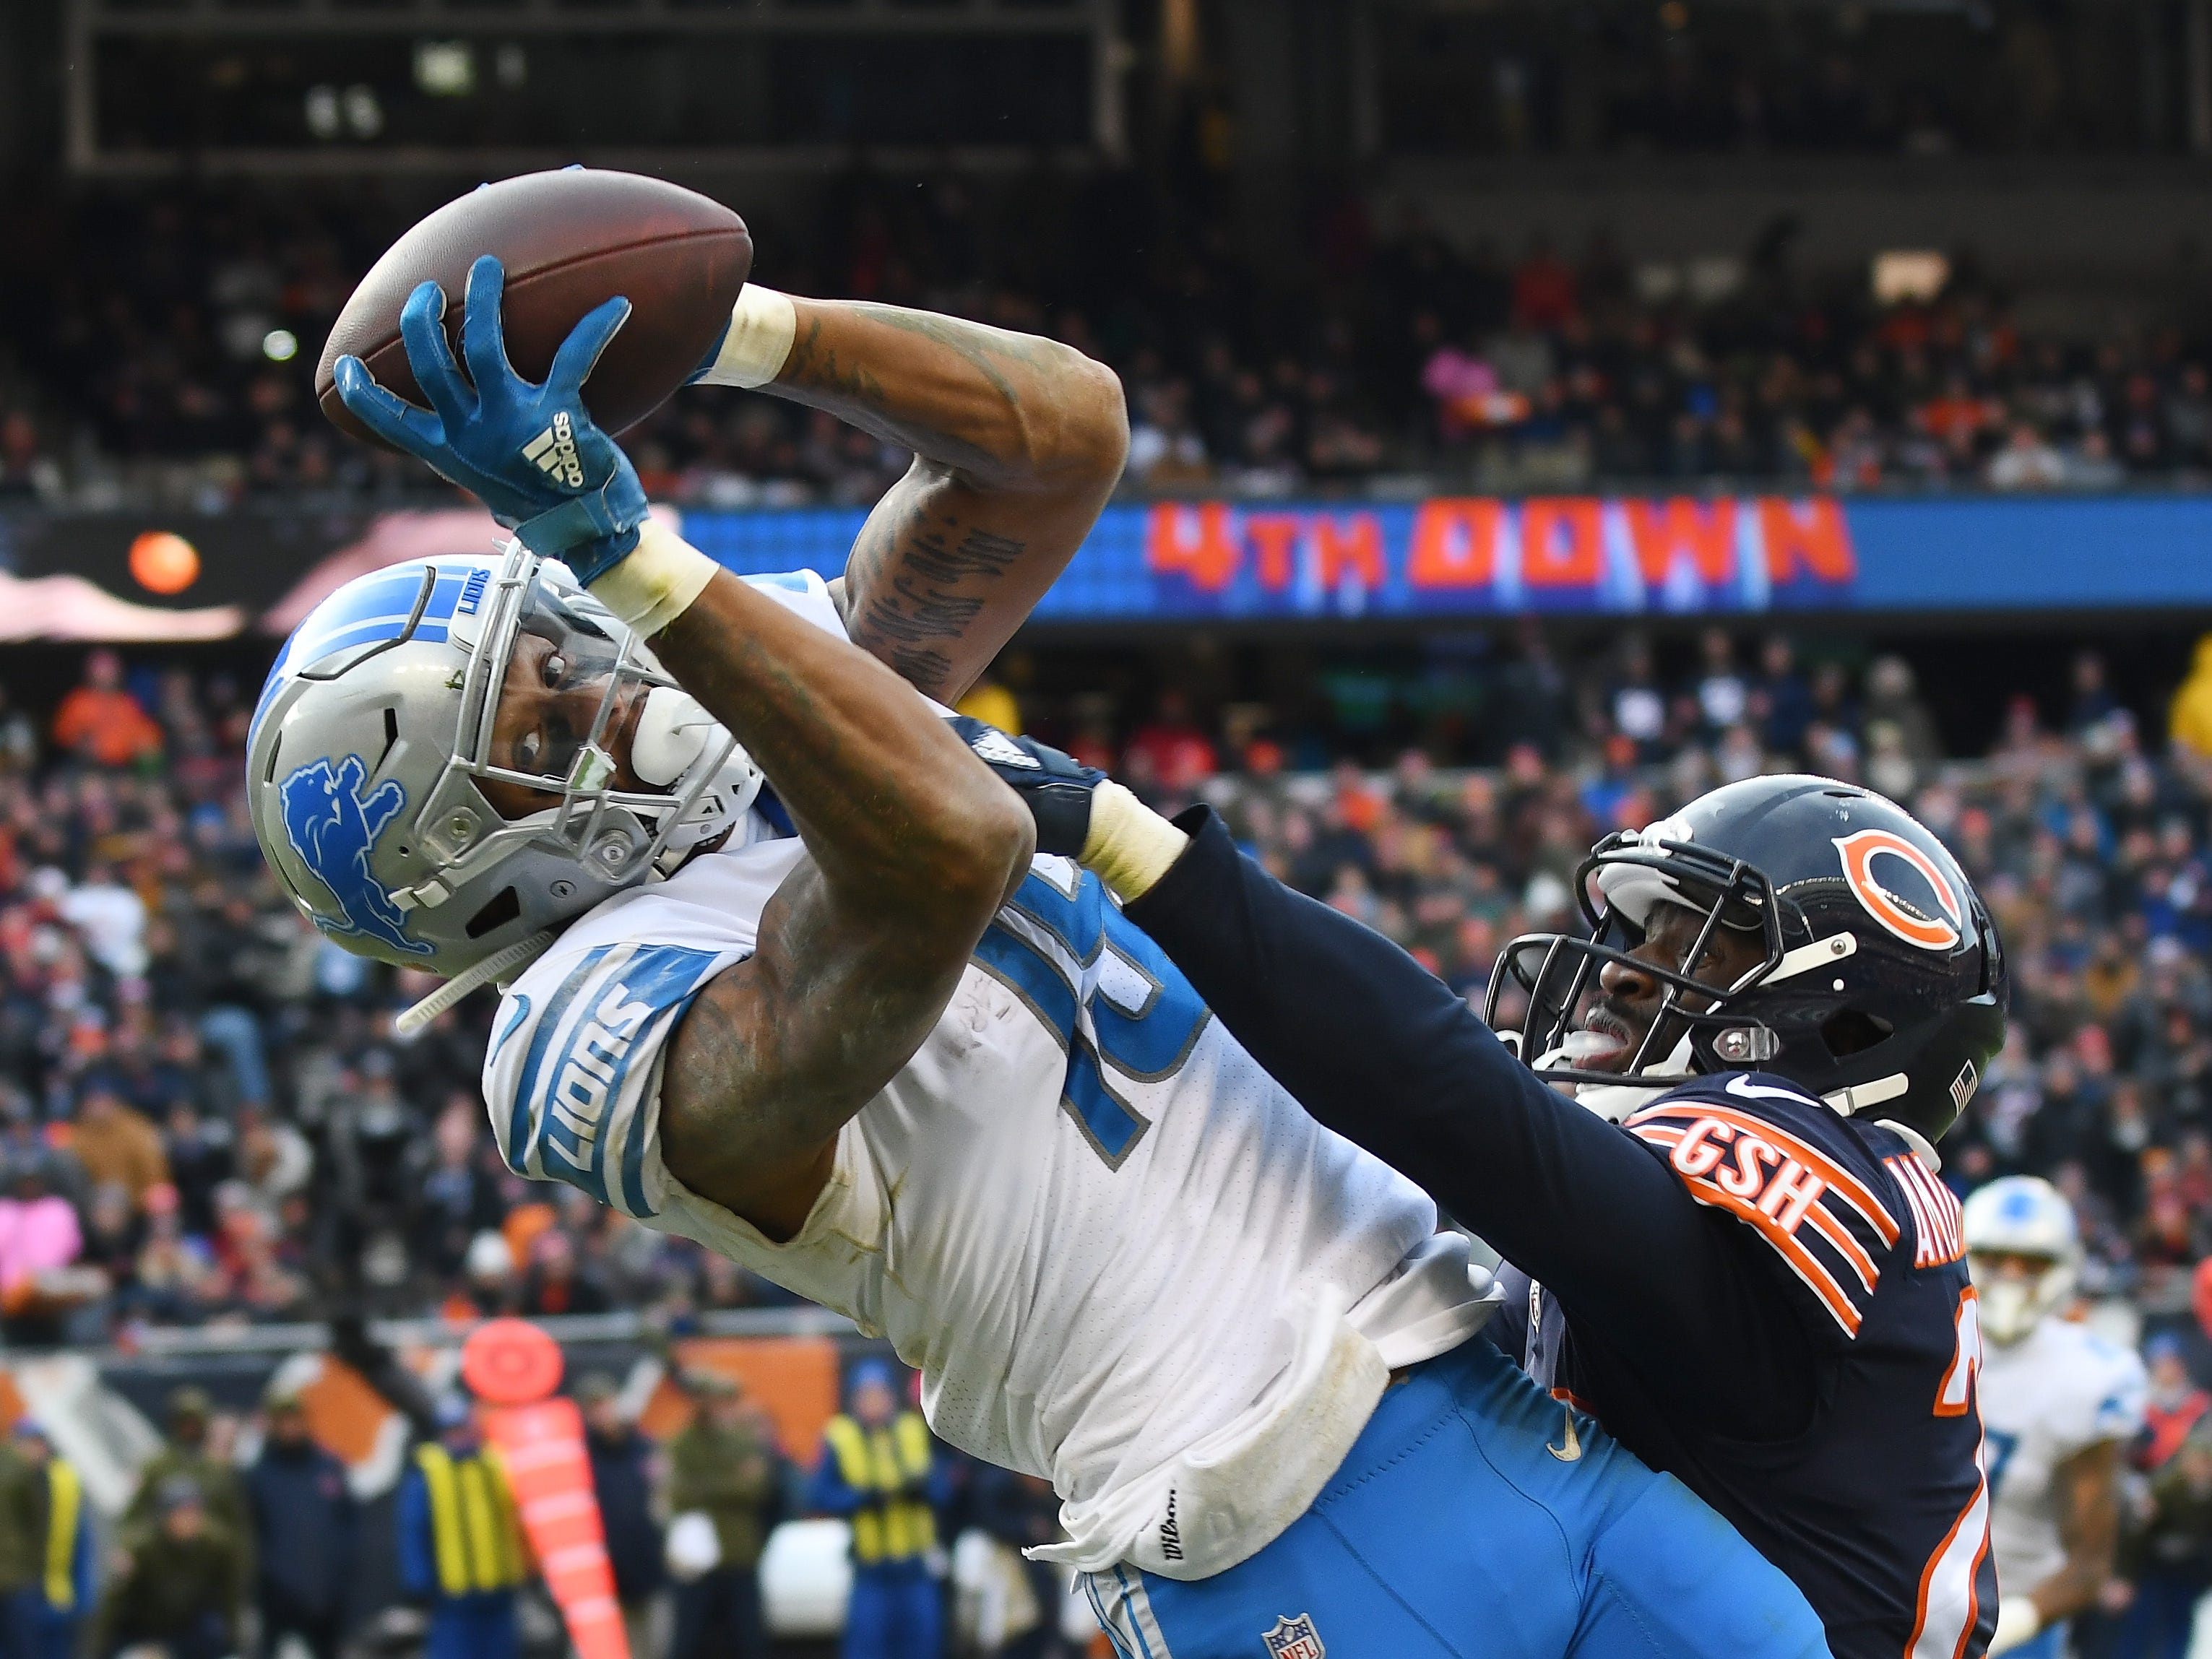 Lions wide receiver Kenny Golladay pulls in a reception along the sidelines over Chicagos' Prince Amukamara late in the fourth quarter.